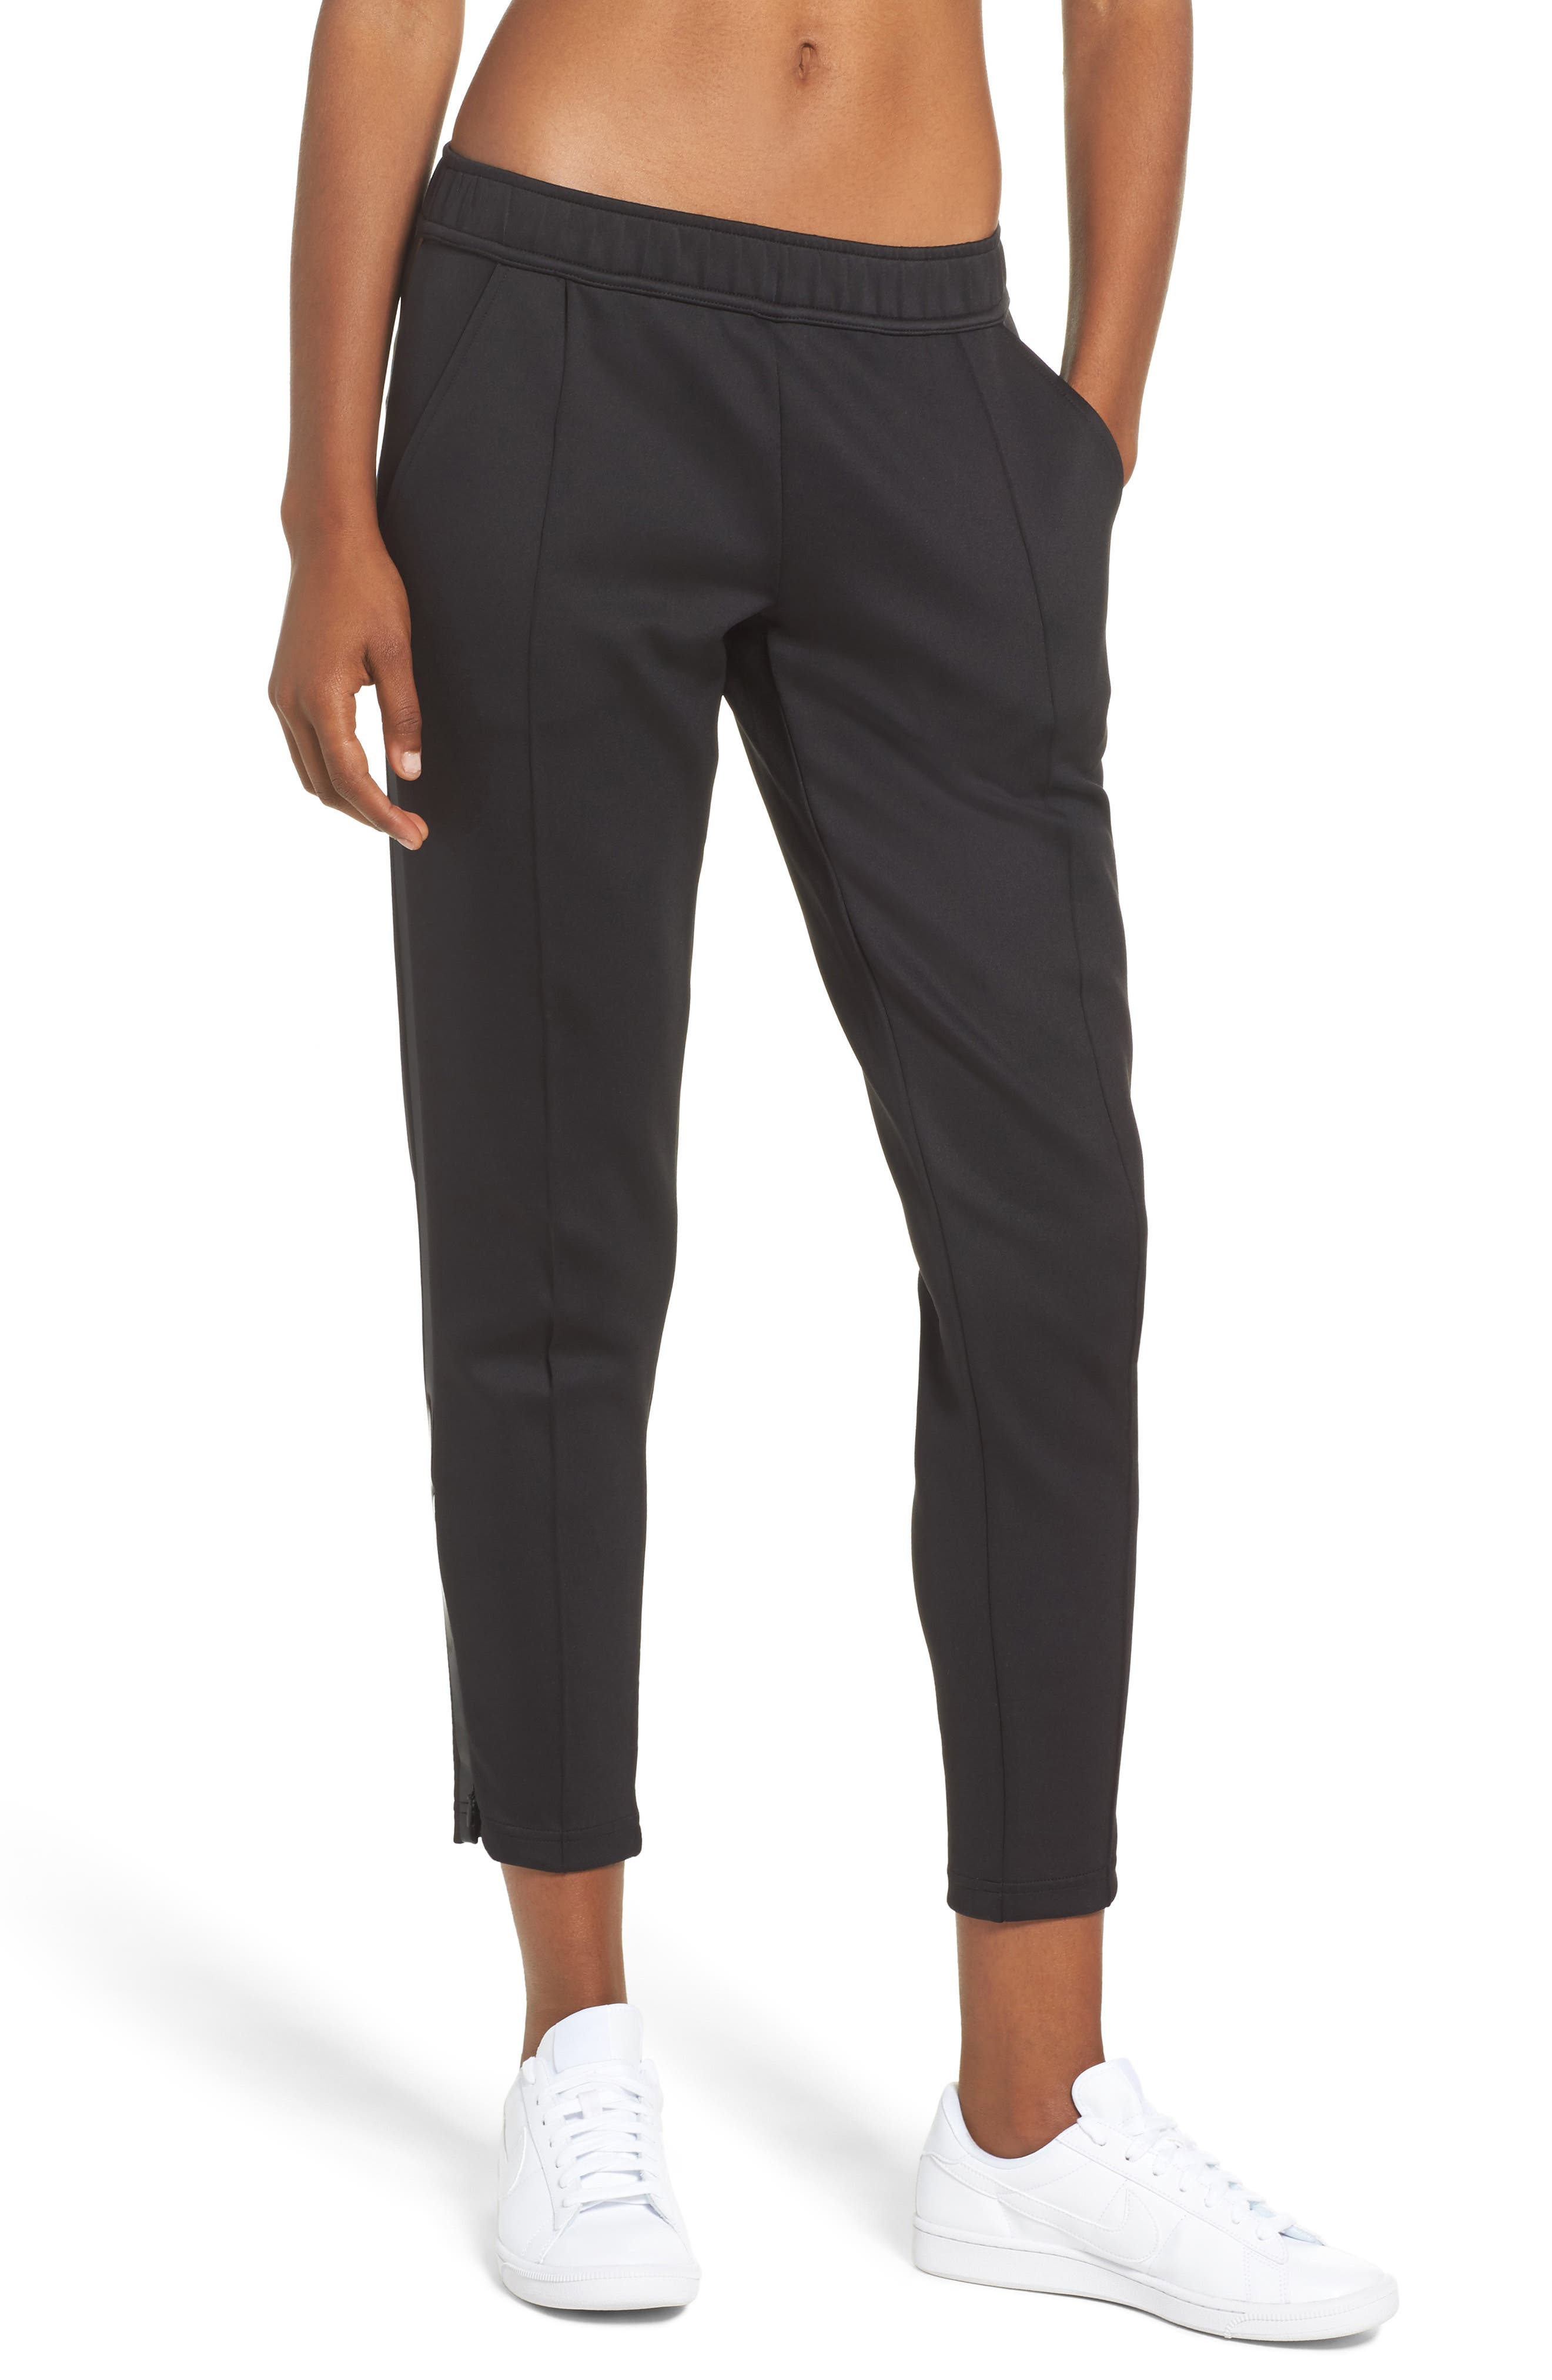 Zella City Chic Track Pants